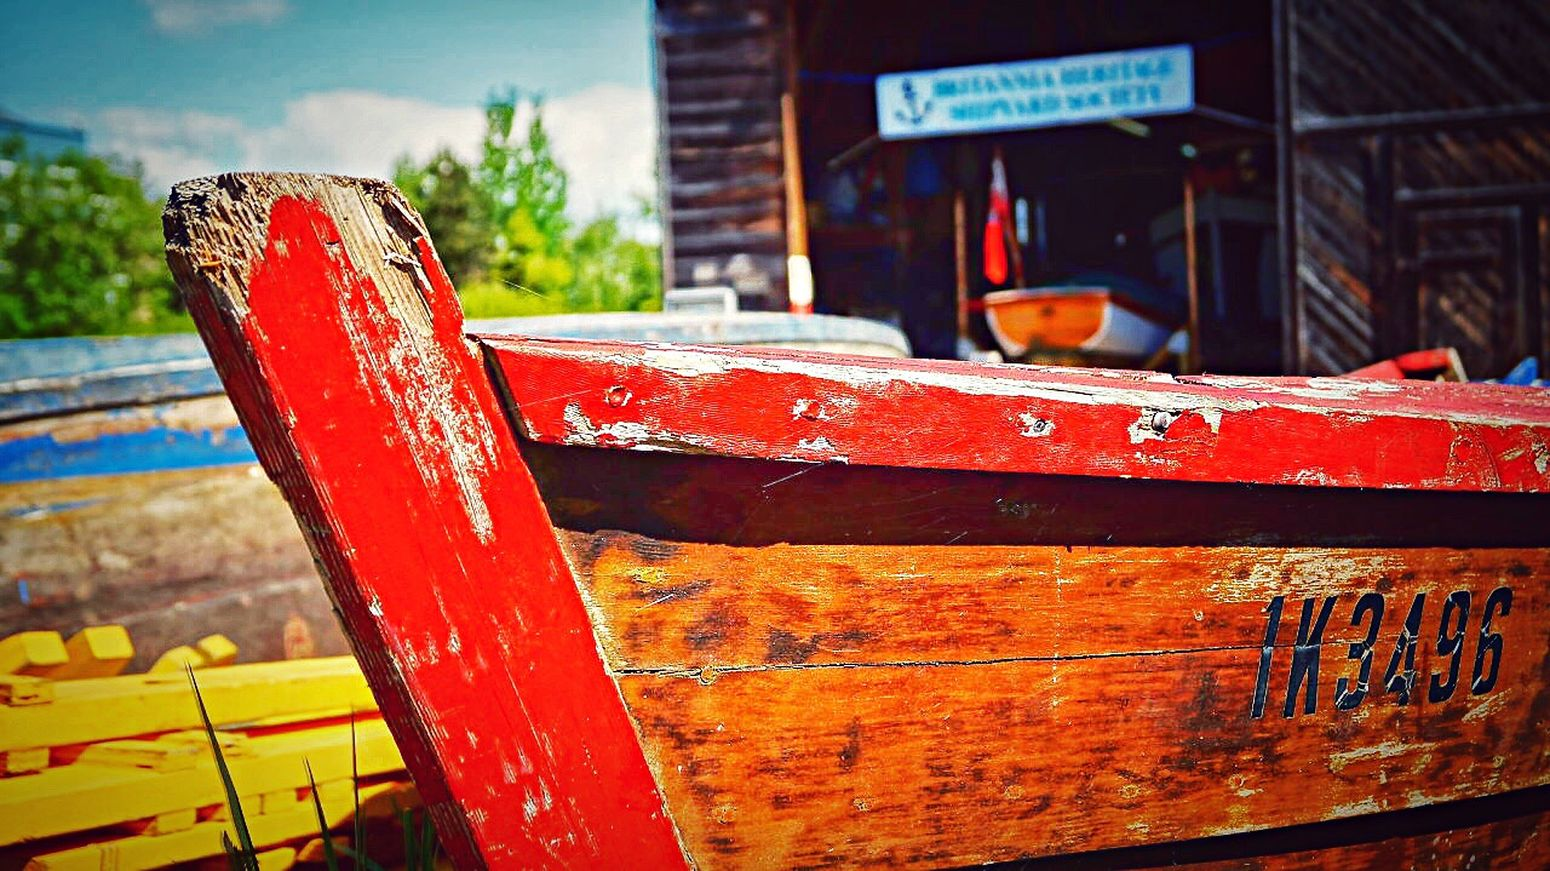 Rebuilding Memories Brittania Steveston Village Boat Wooden Boat Shipyard Saturation Afternoon